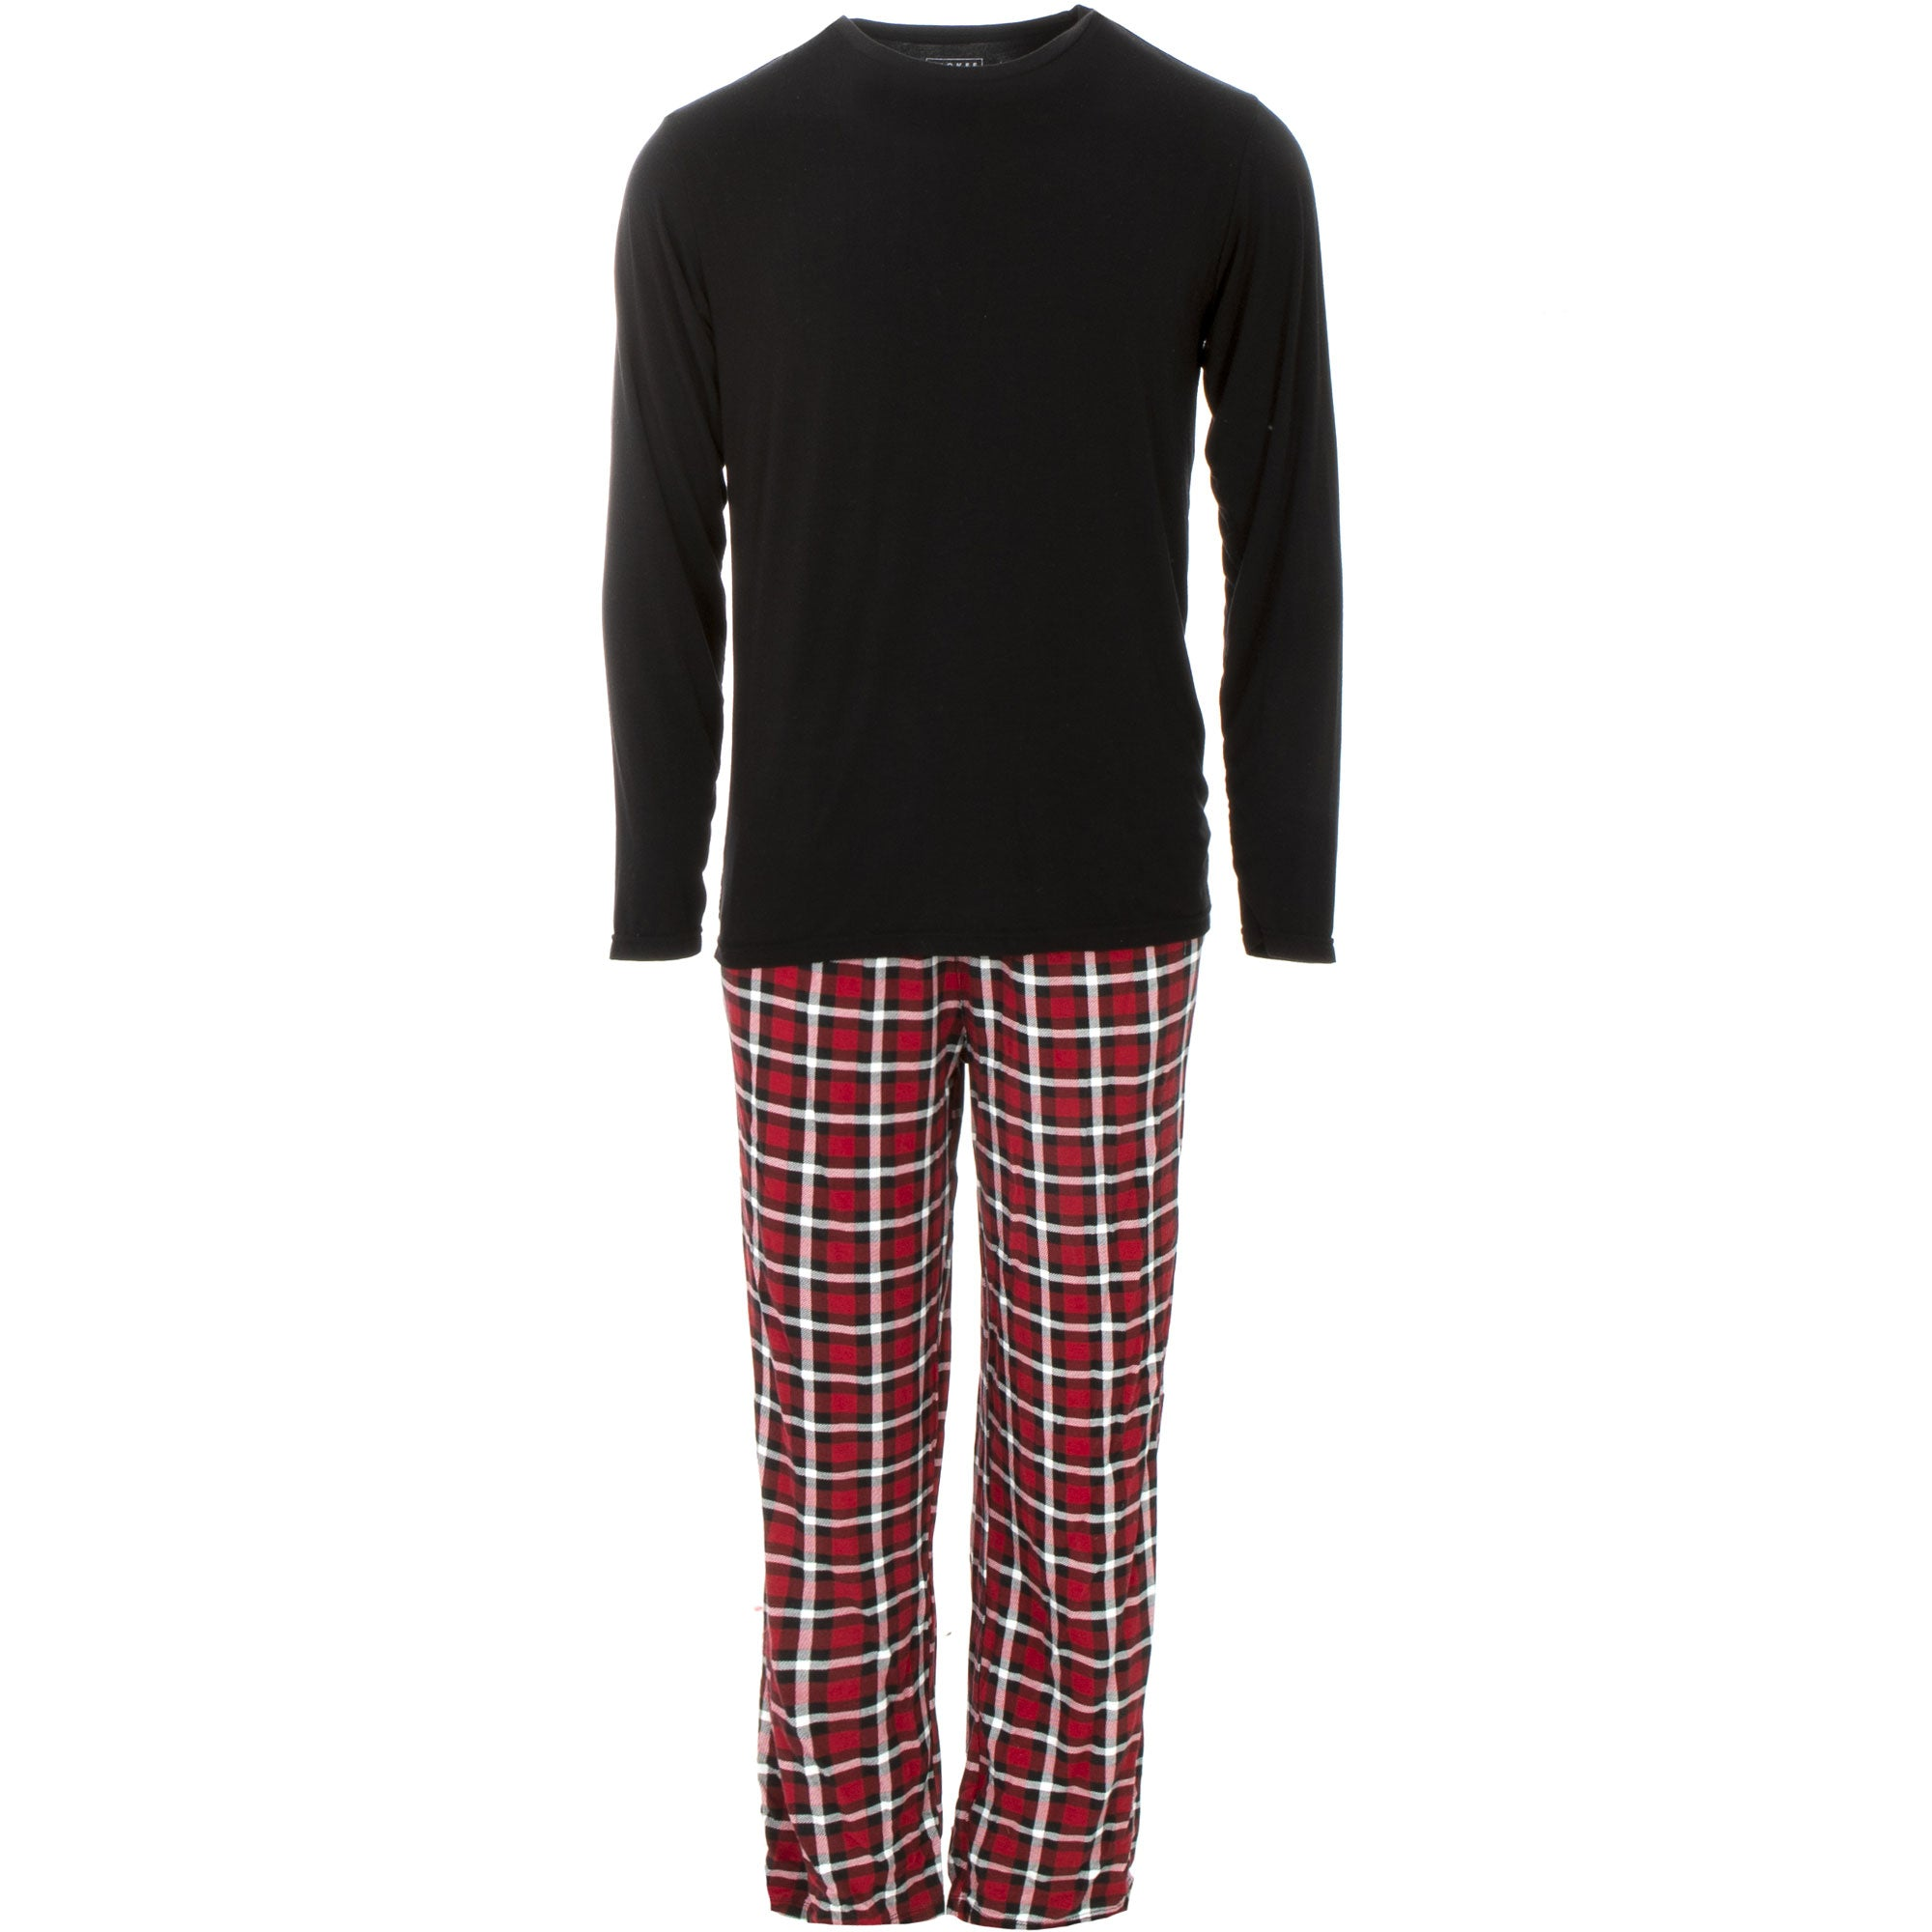 KicKee Pants Mens Long Sleeve Pajama Set - Crimson 2020 Holiday Plaid